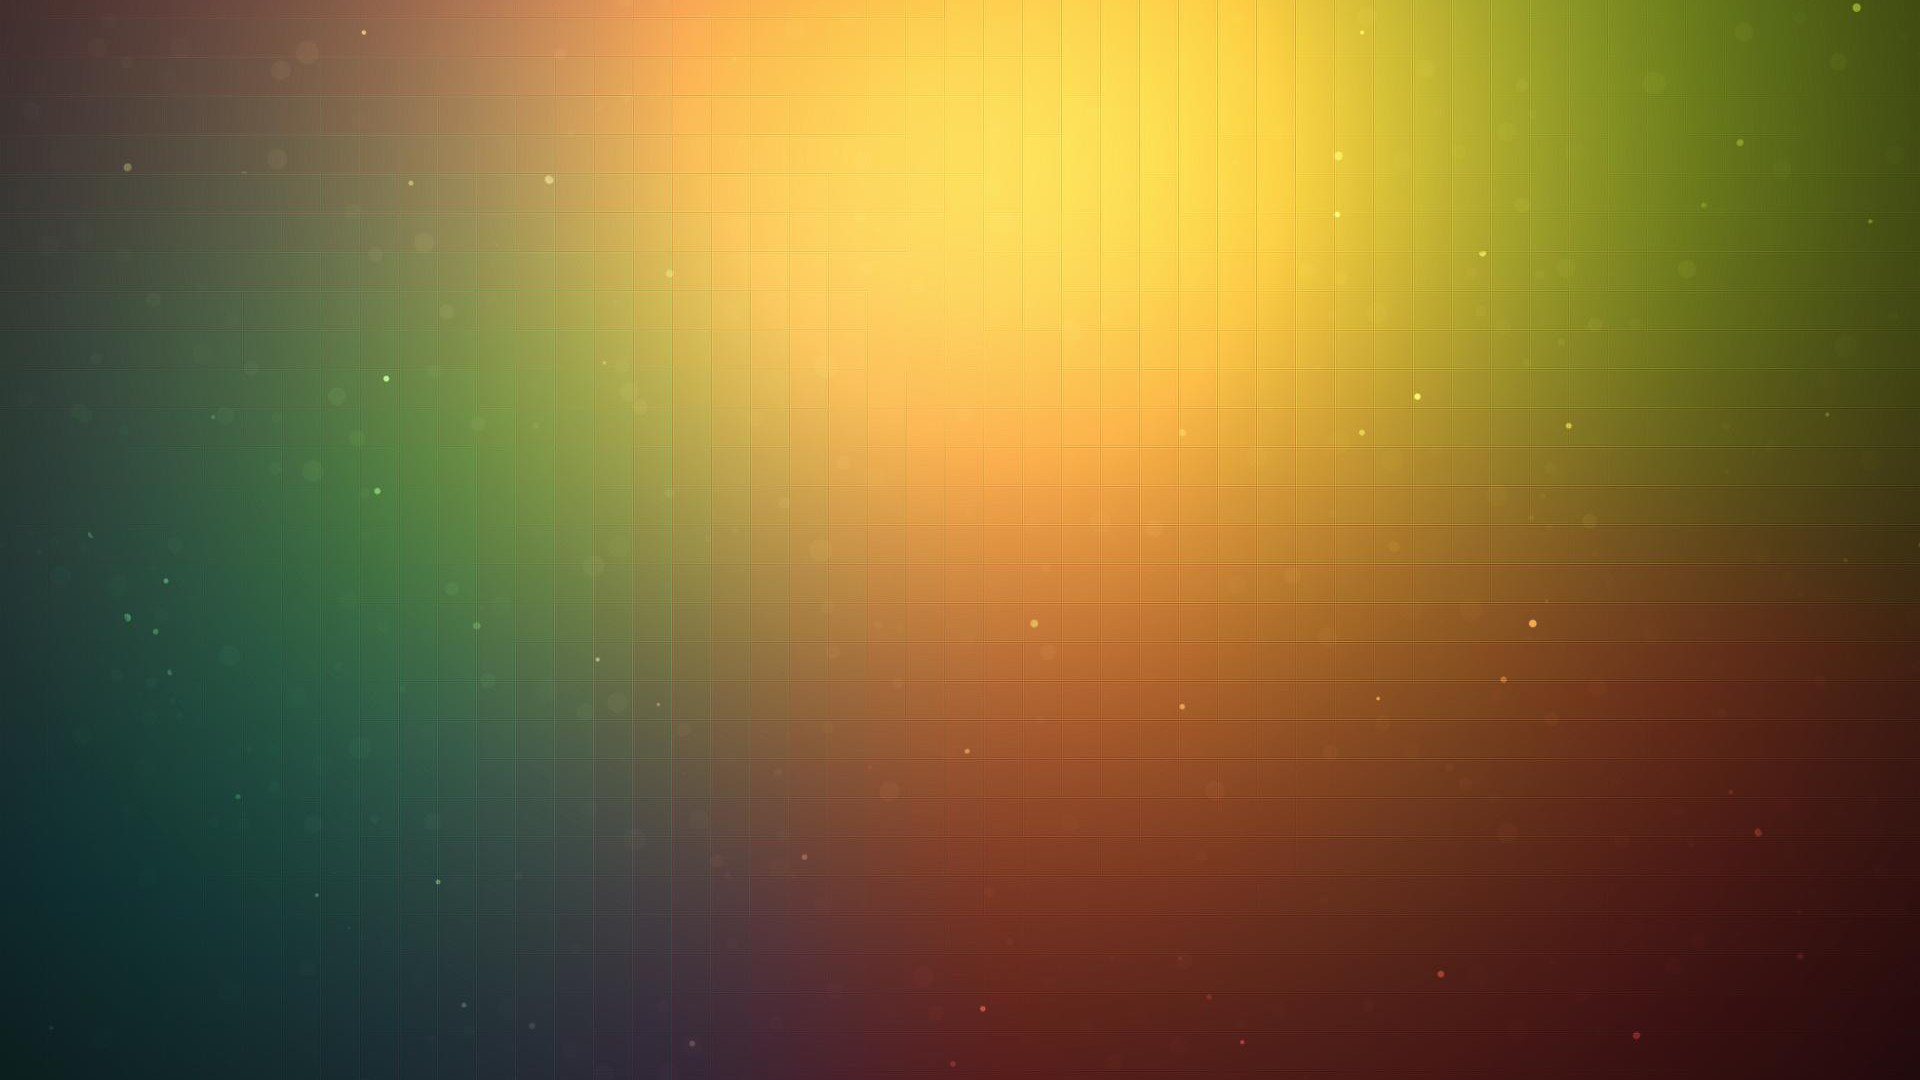 backgrounds-simple-wallpapers-hd | wallpaper.wiki